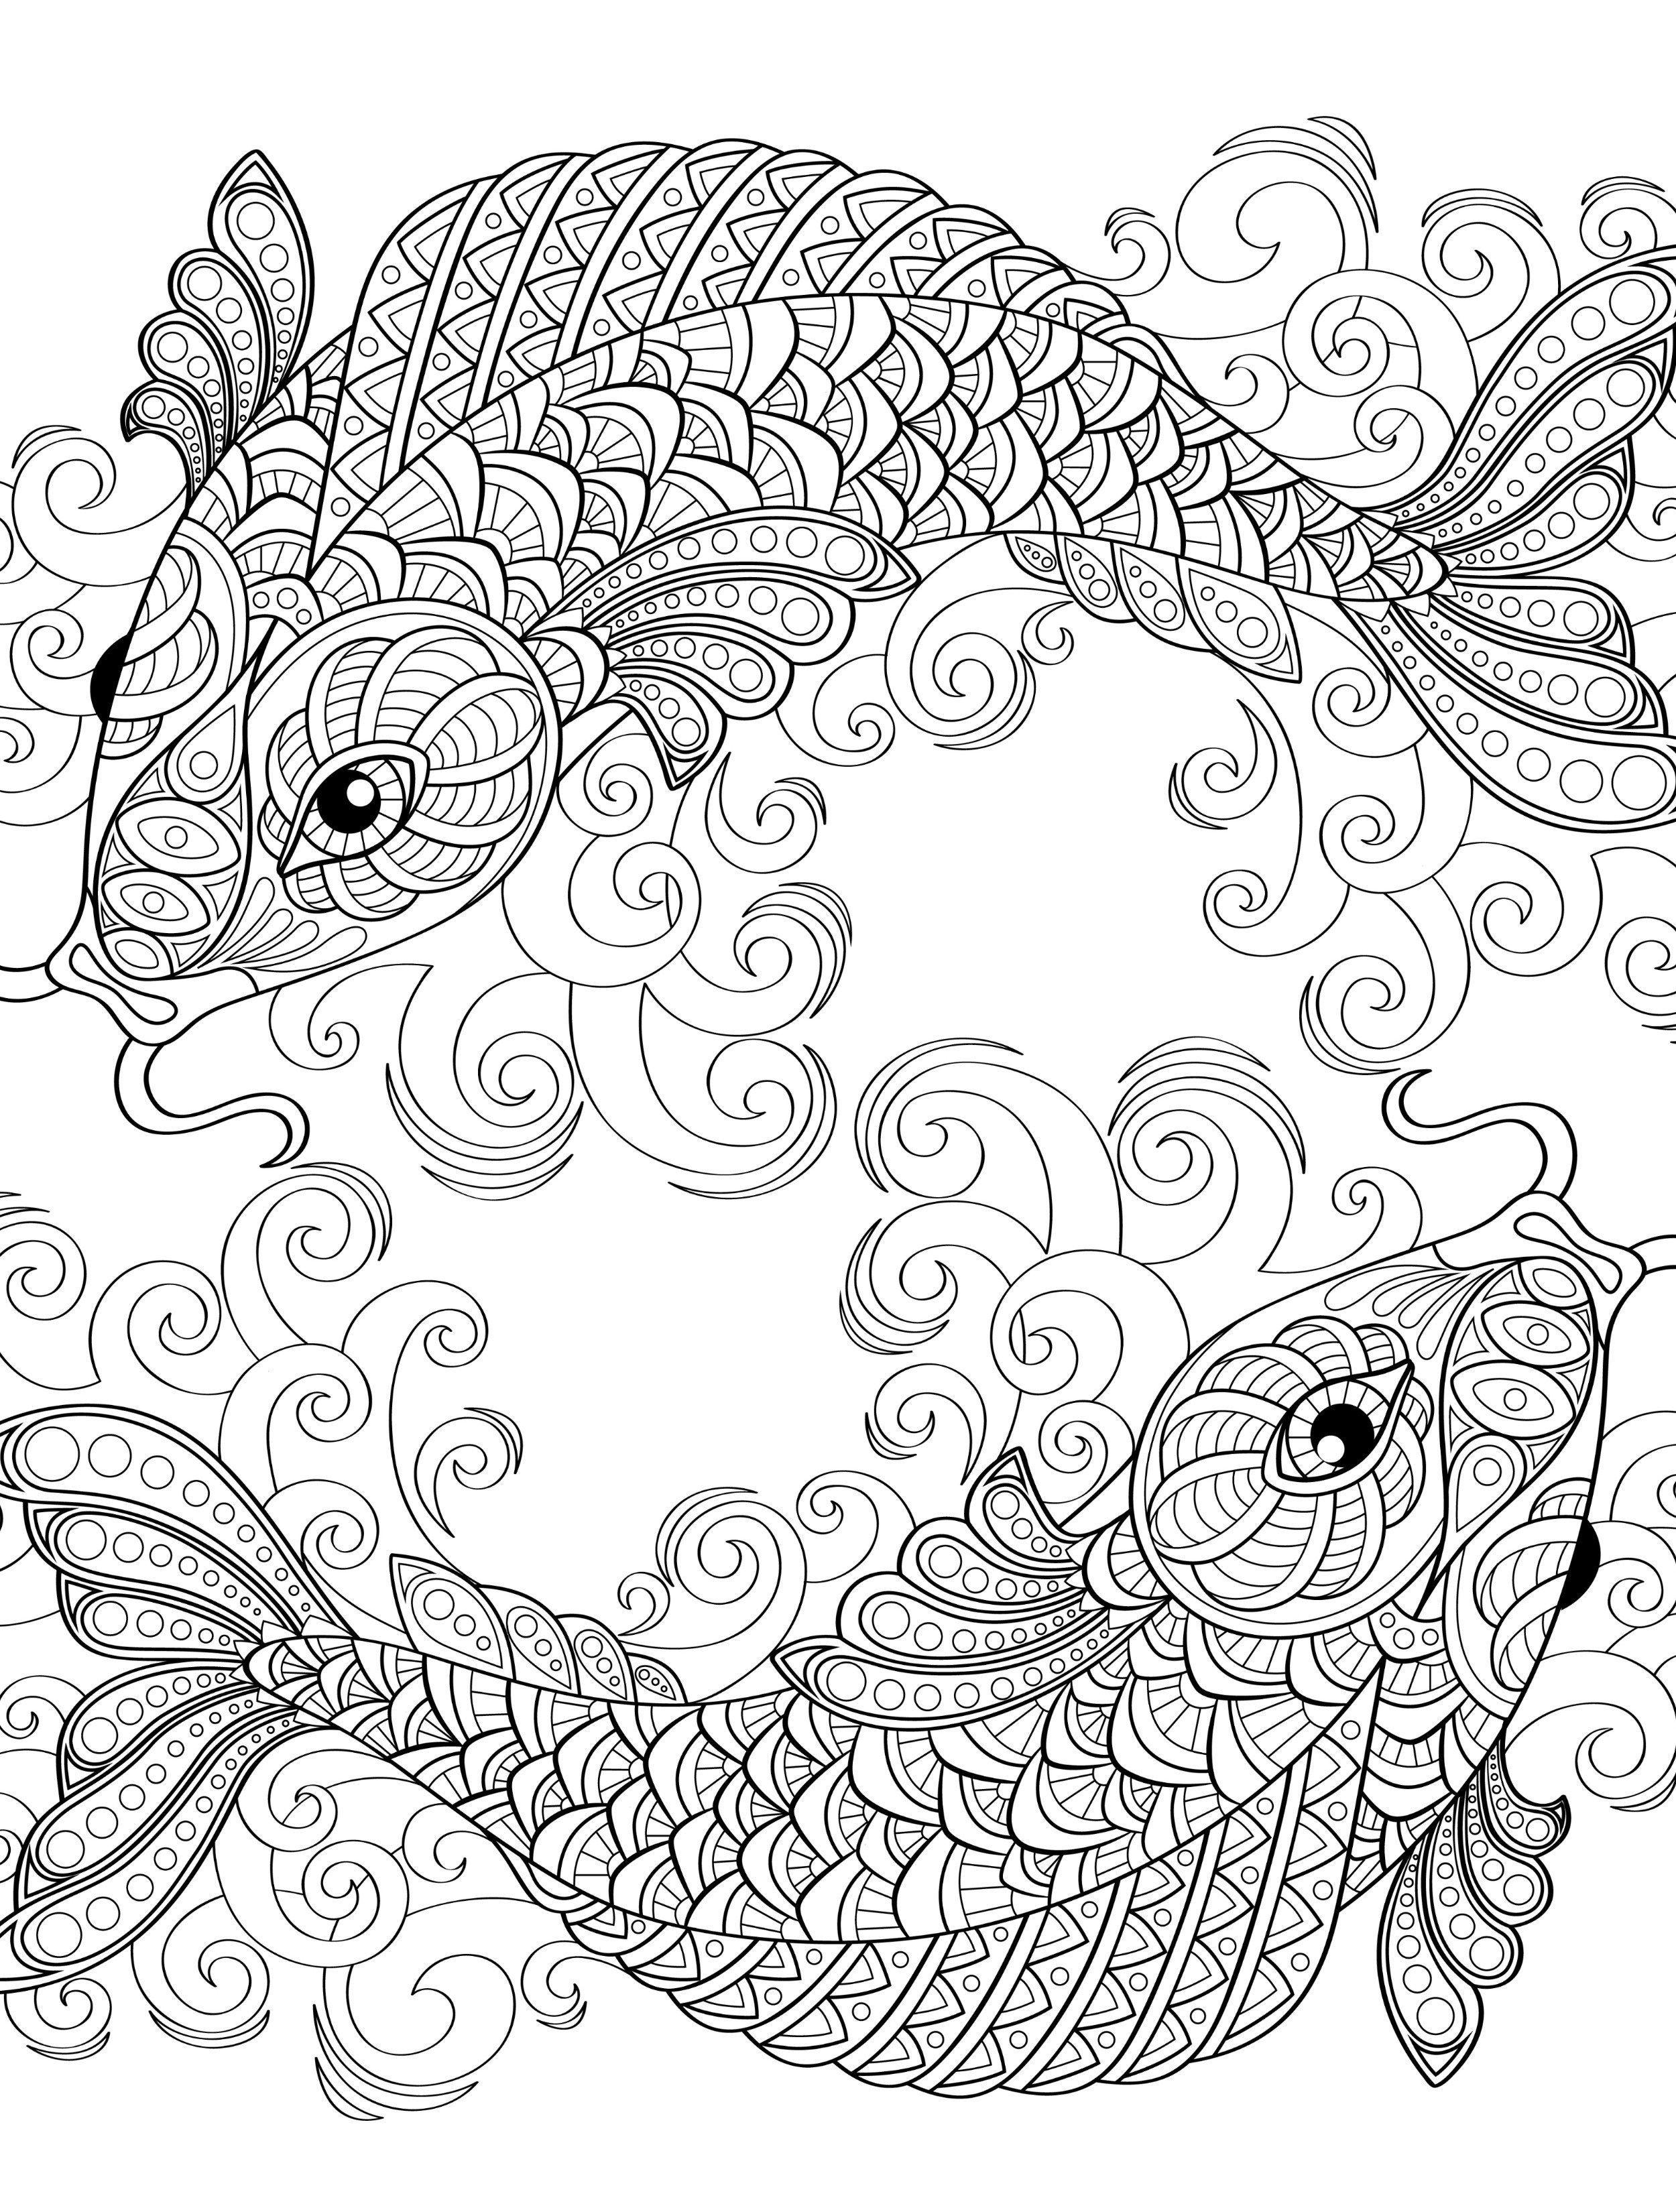 Whimsical designs coloring book - Yin And Yang Pieces Symbol Fish Coloring Page For Adults